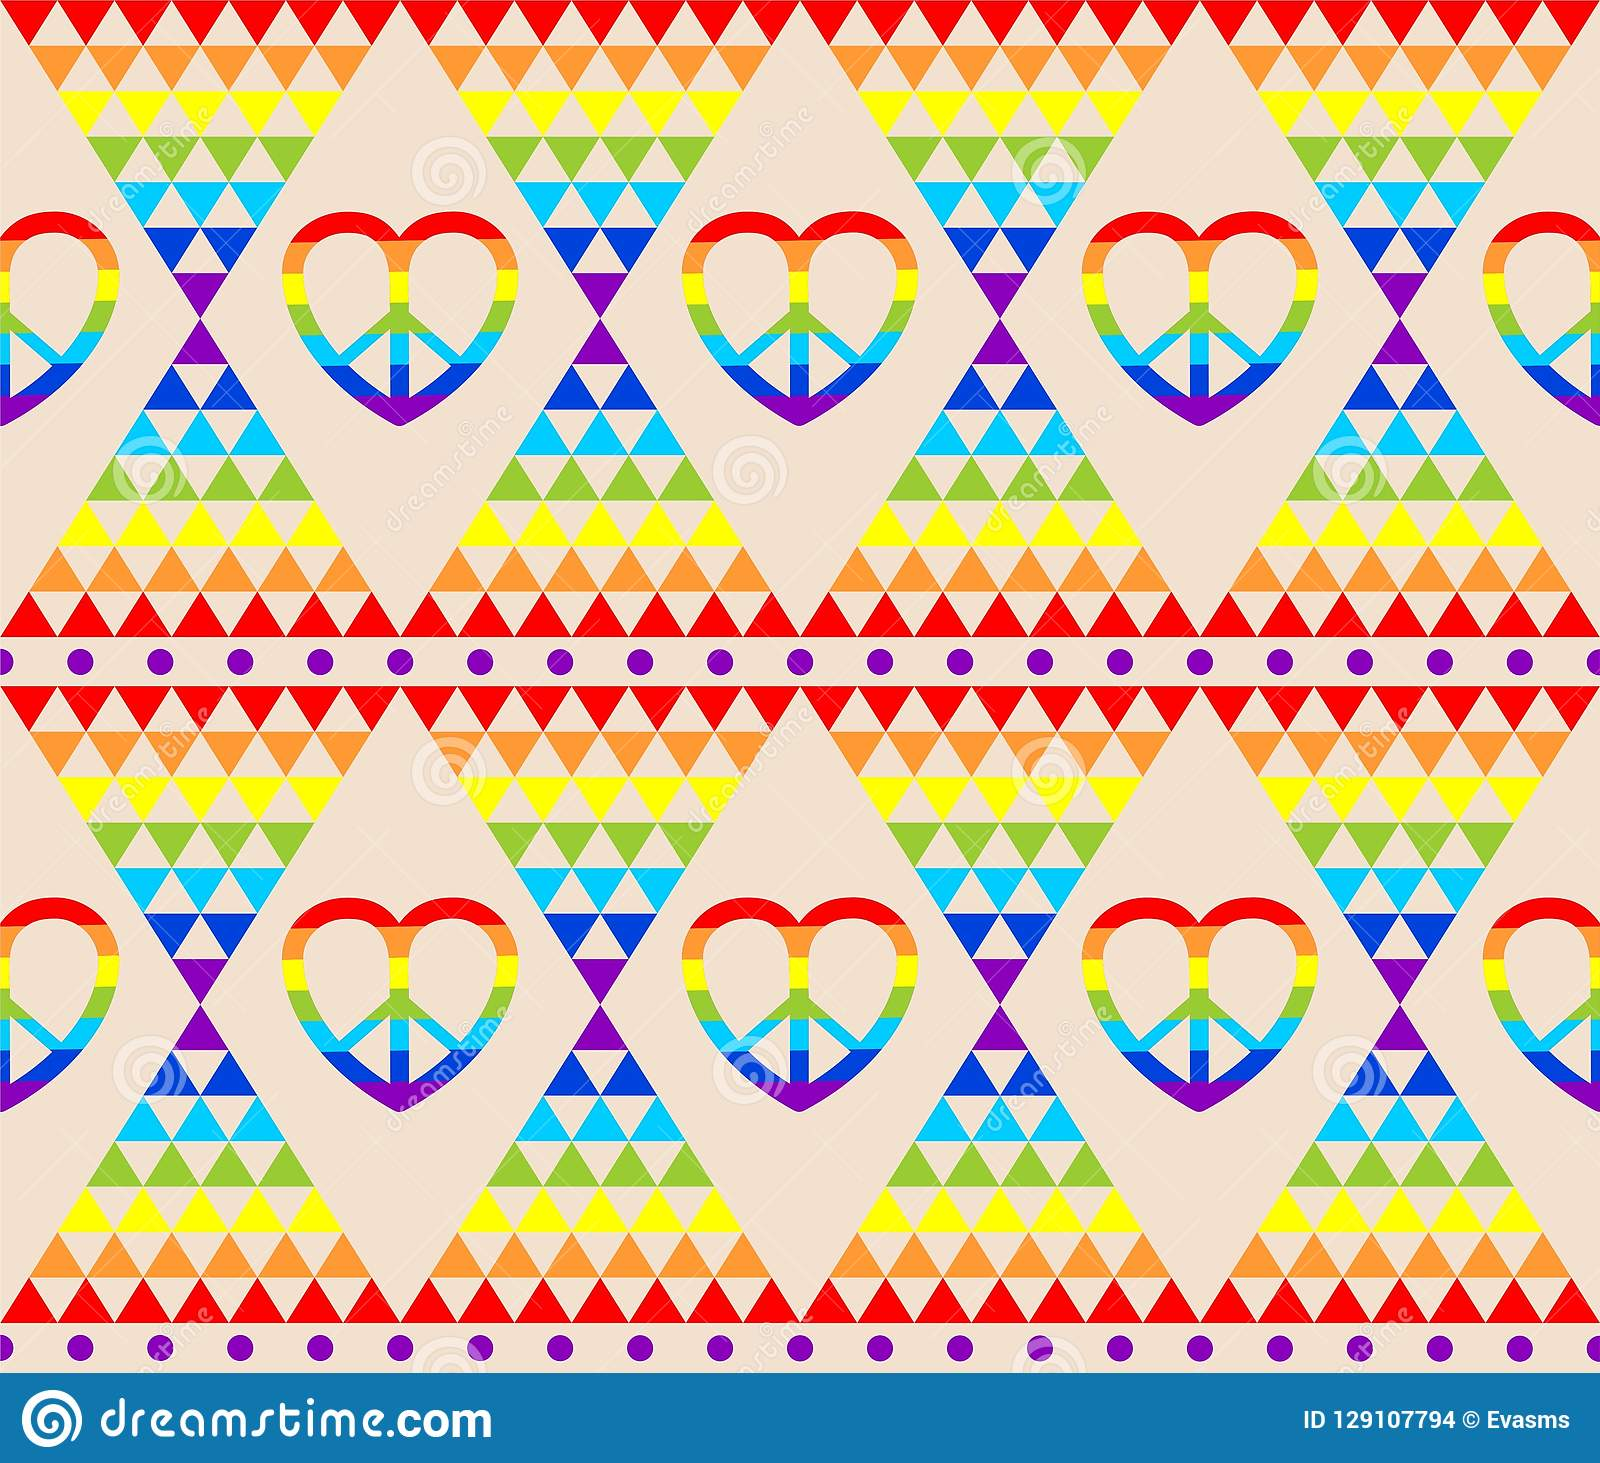 Vintage hippie wallpaper in rainbow colors, hippie symbol, psychedelic abstract triangle colorful pattern